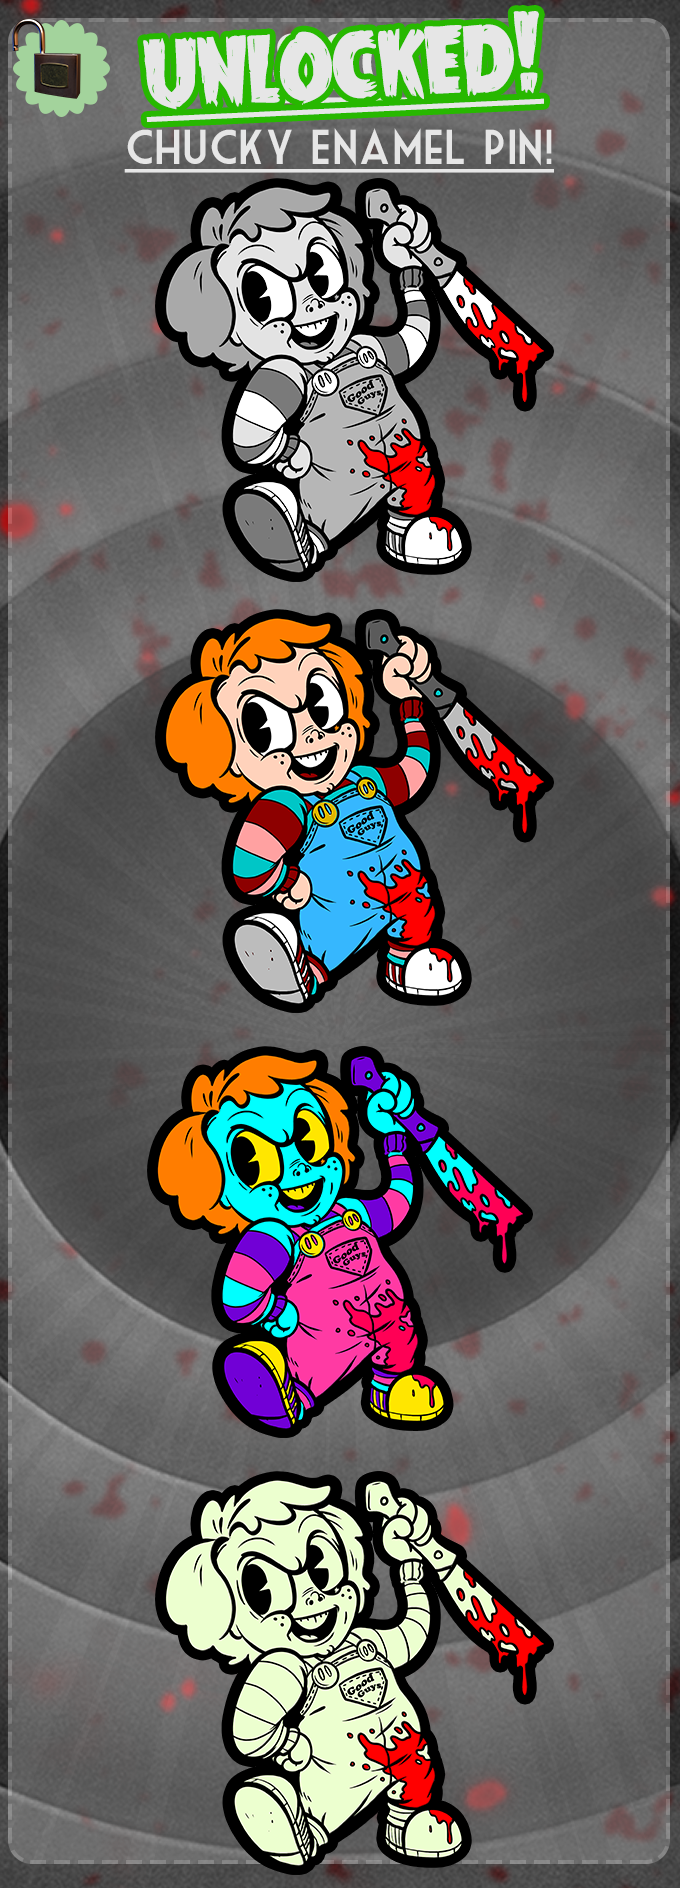 Chucky Unlocked!!! So happy to have another friend to play with!